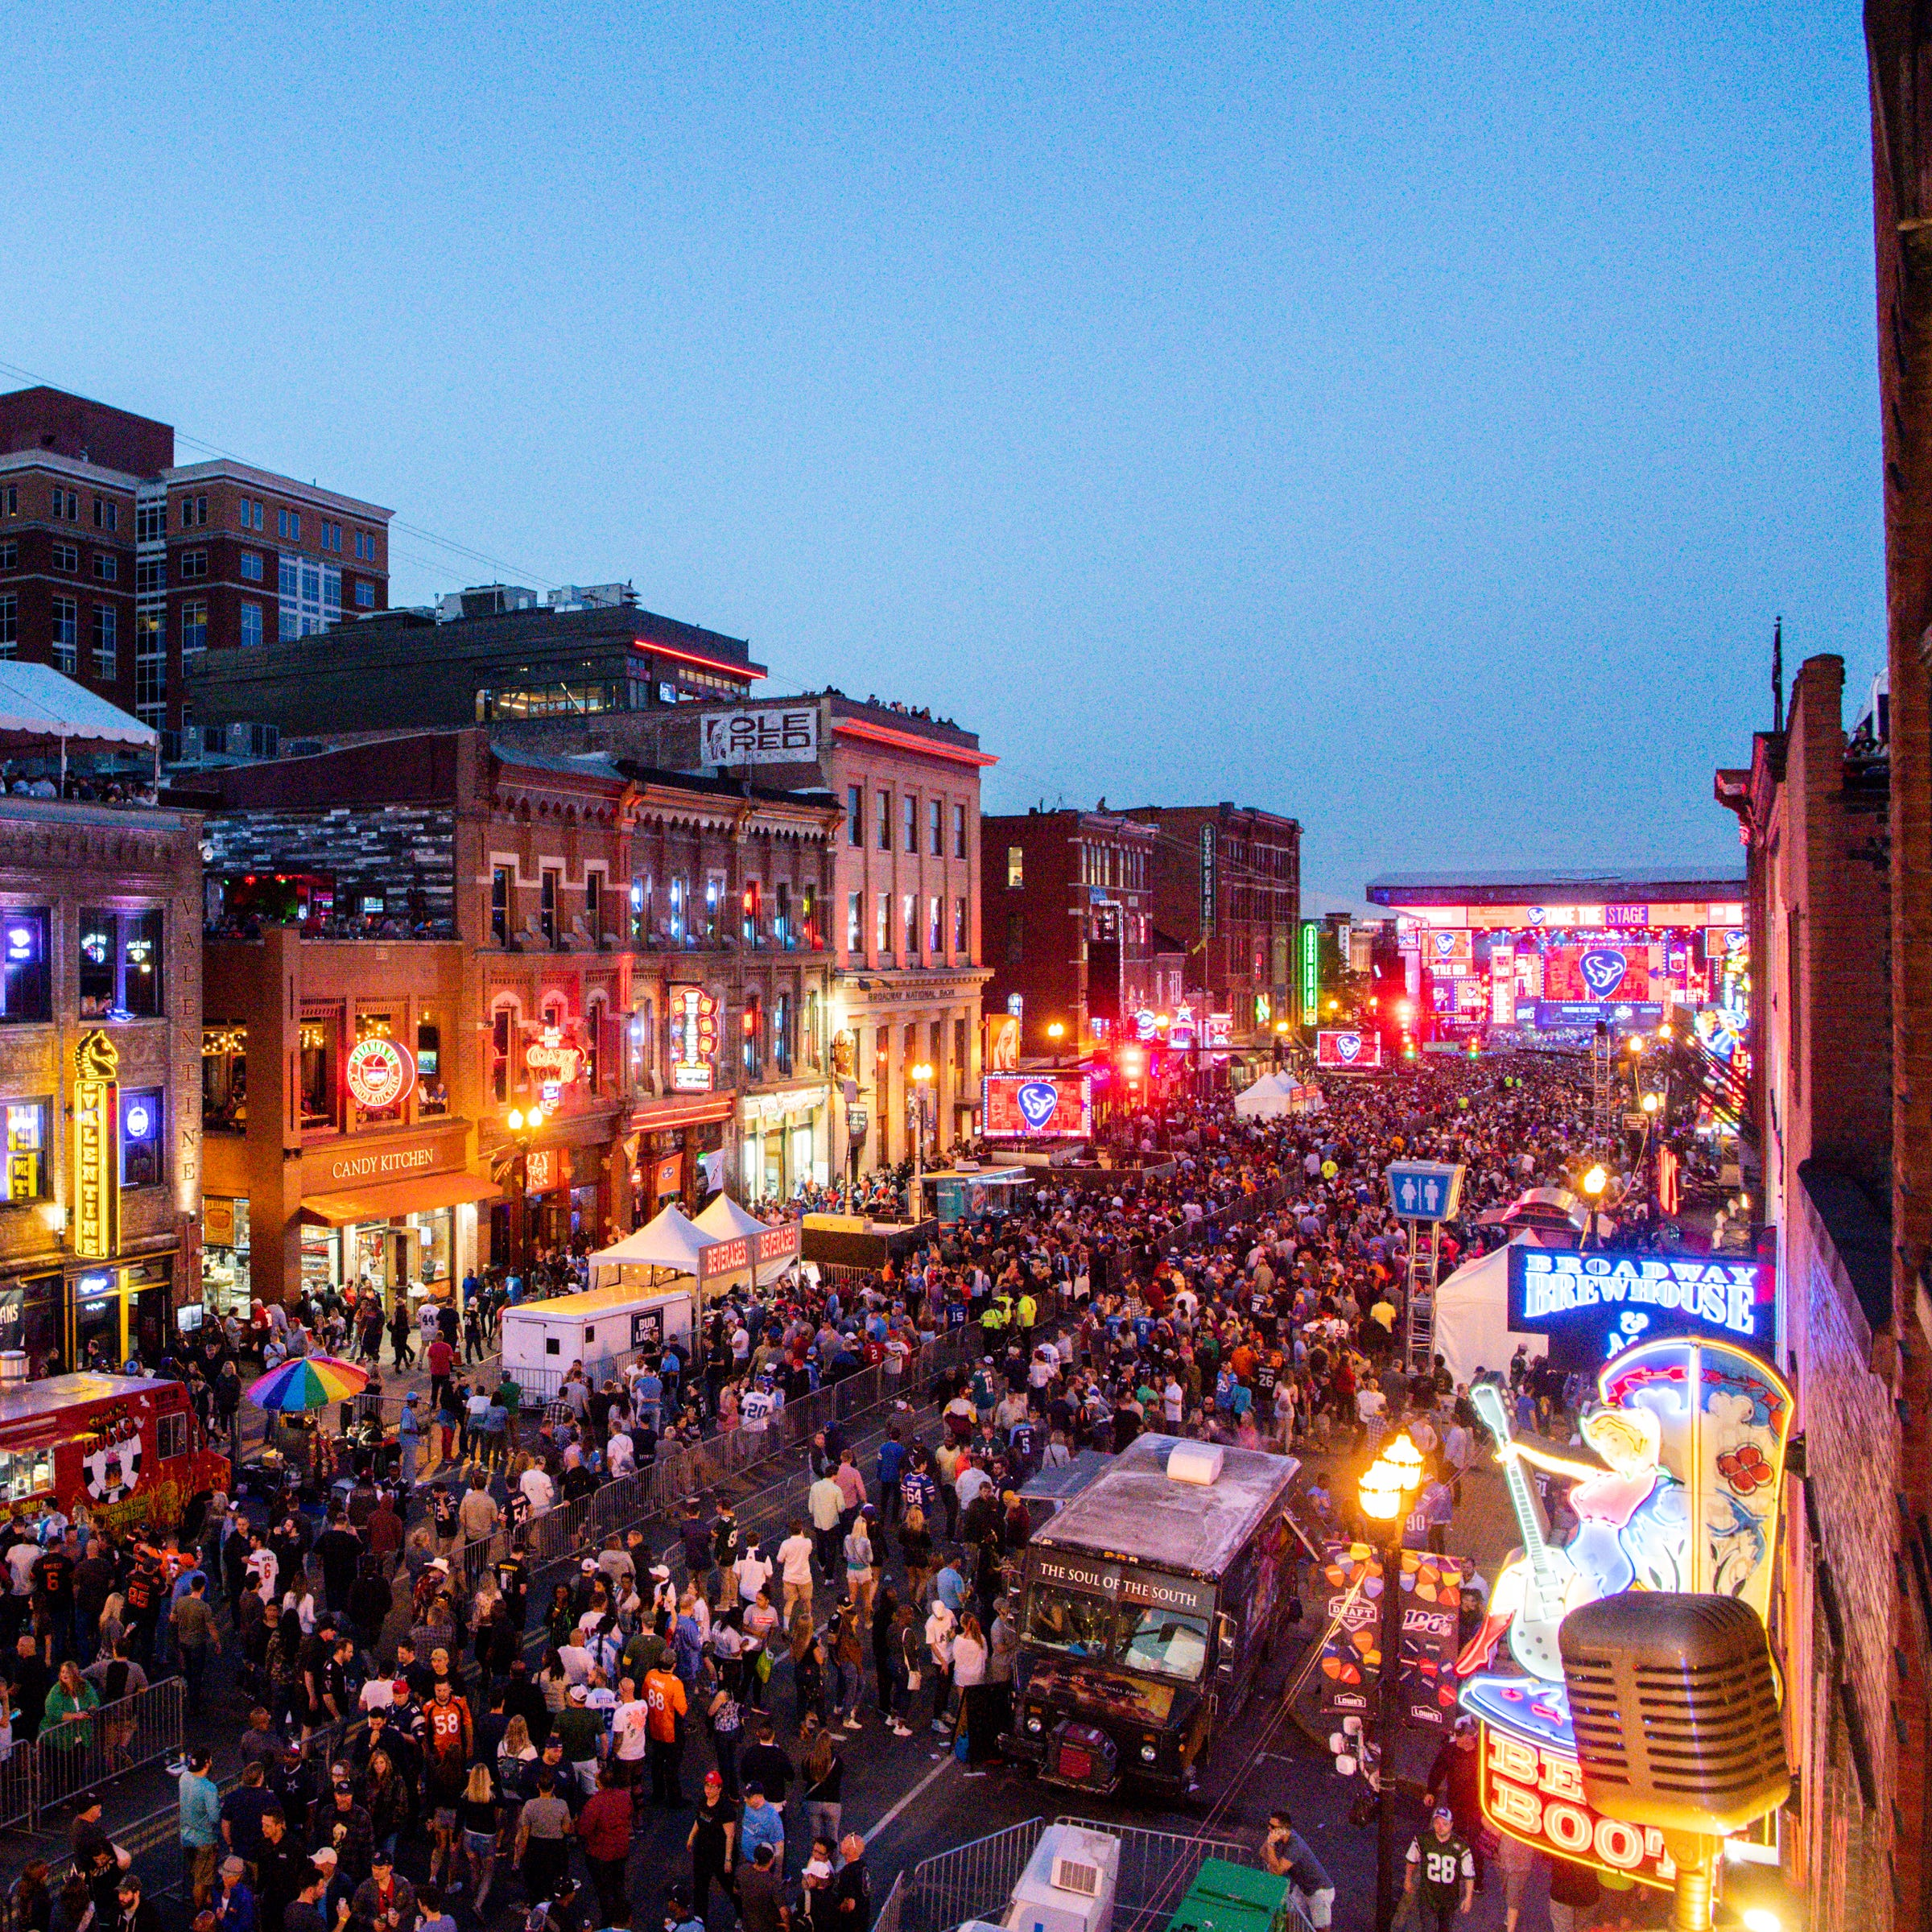 NFL Draft today, Super Bowl tomorrow? Nashville keeps dreaming